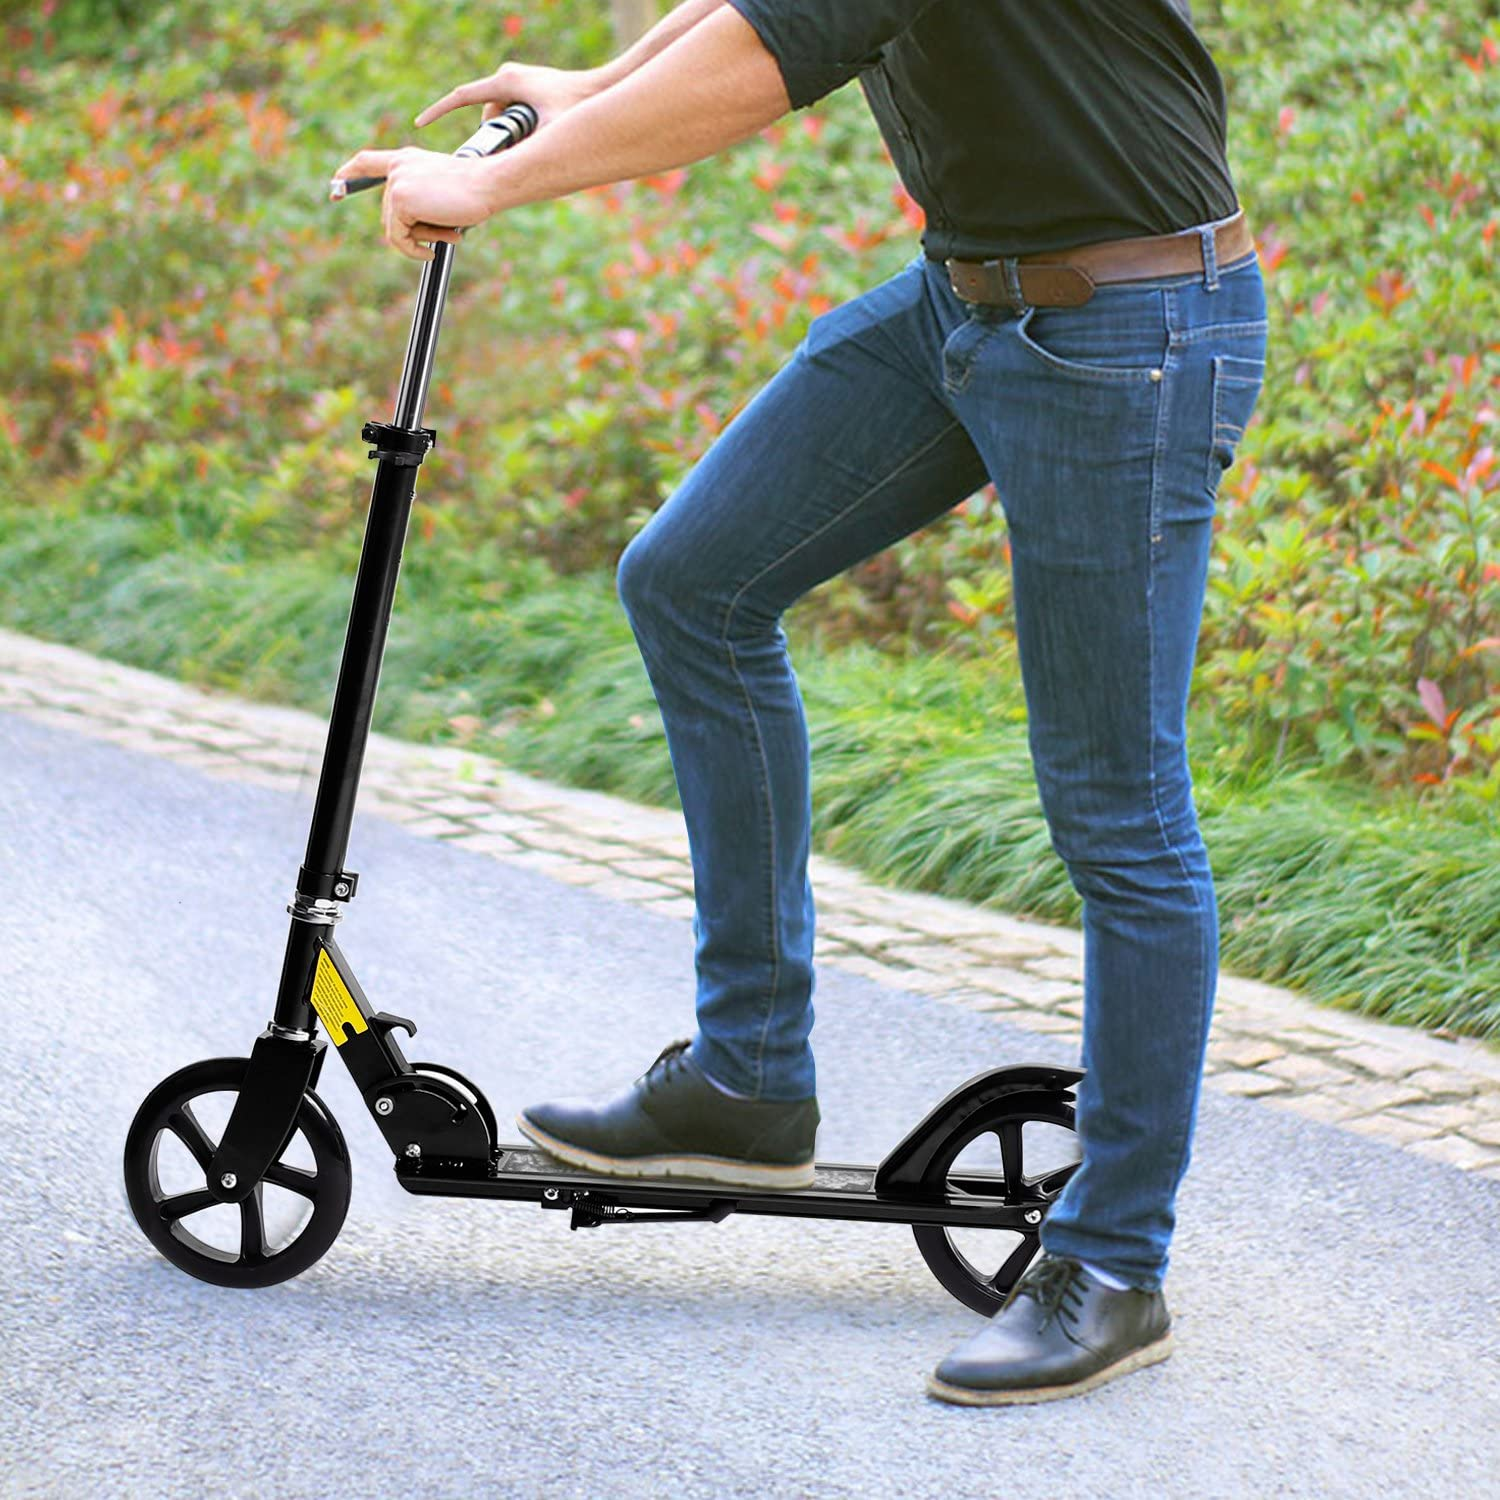 Juane Scooter for Adult Teens Youth Kids 3 Levels Adjustable Height Easy-Folding Portable Kick Scooter with 200mm Big Wheels Rear Fender Brake Max Load 220lbs Age 8 up